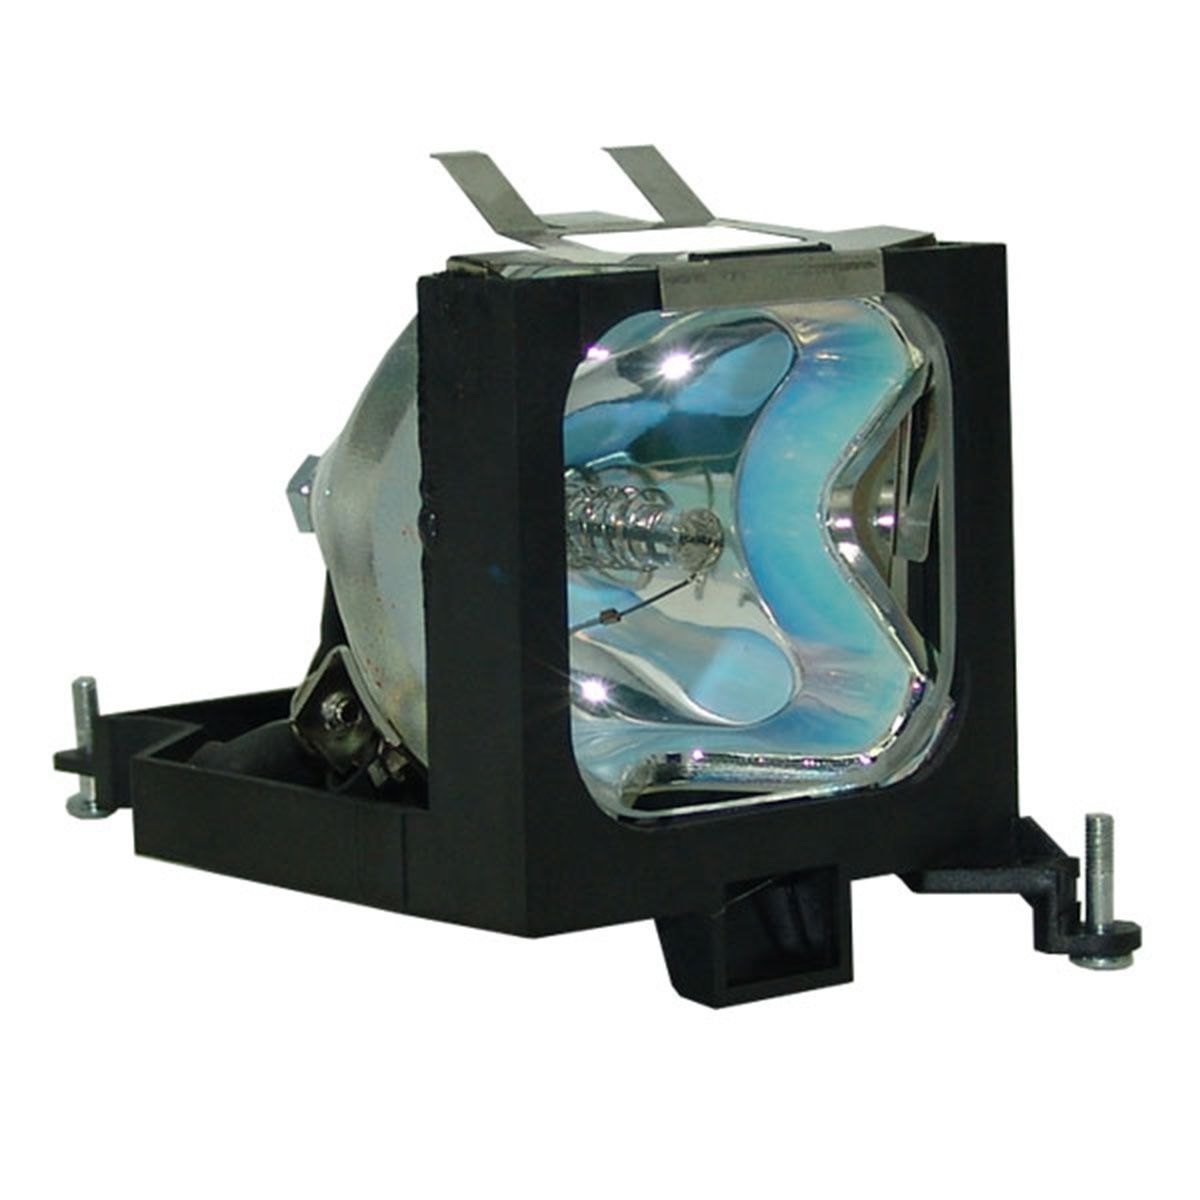 POA-LMP91 LMP91 for SANYO PLC-SW35 PLC-SU70 PLC-XE40 PLC-XU2530C PLC-XU73 Projector Bulb Lamp With Housing compatible projector lamp bulbs poa lmp136 for sanyo plc xm150 plc wm5500 plc zm5000l plc xm150l